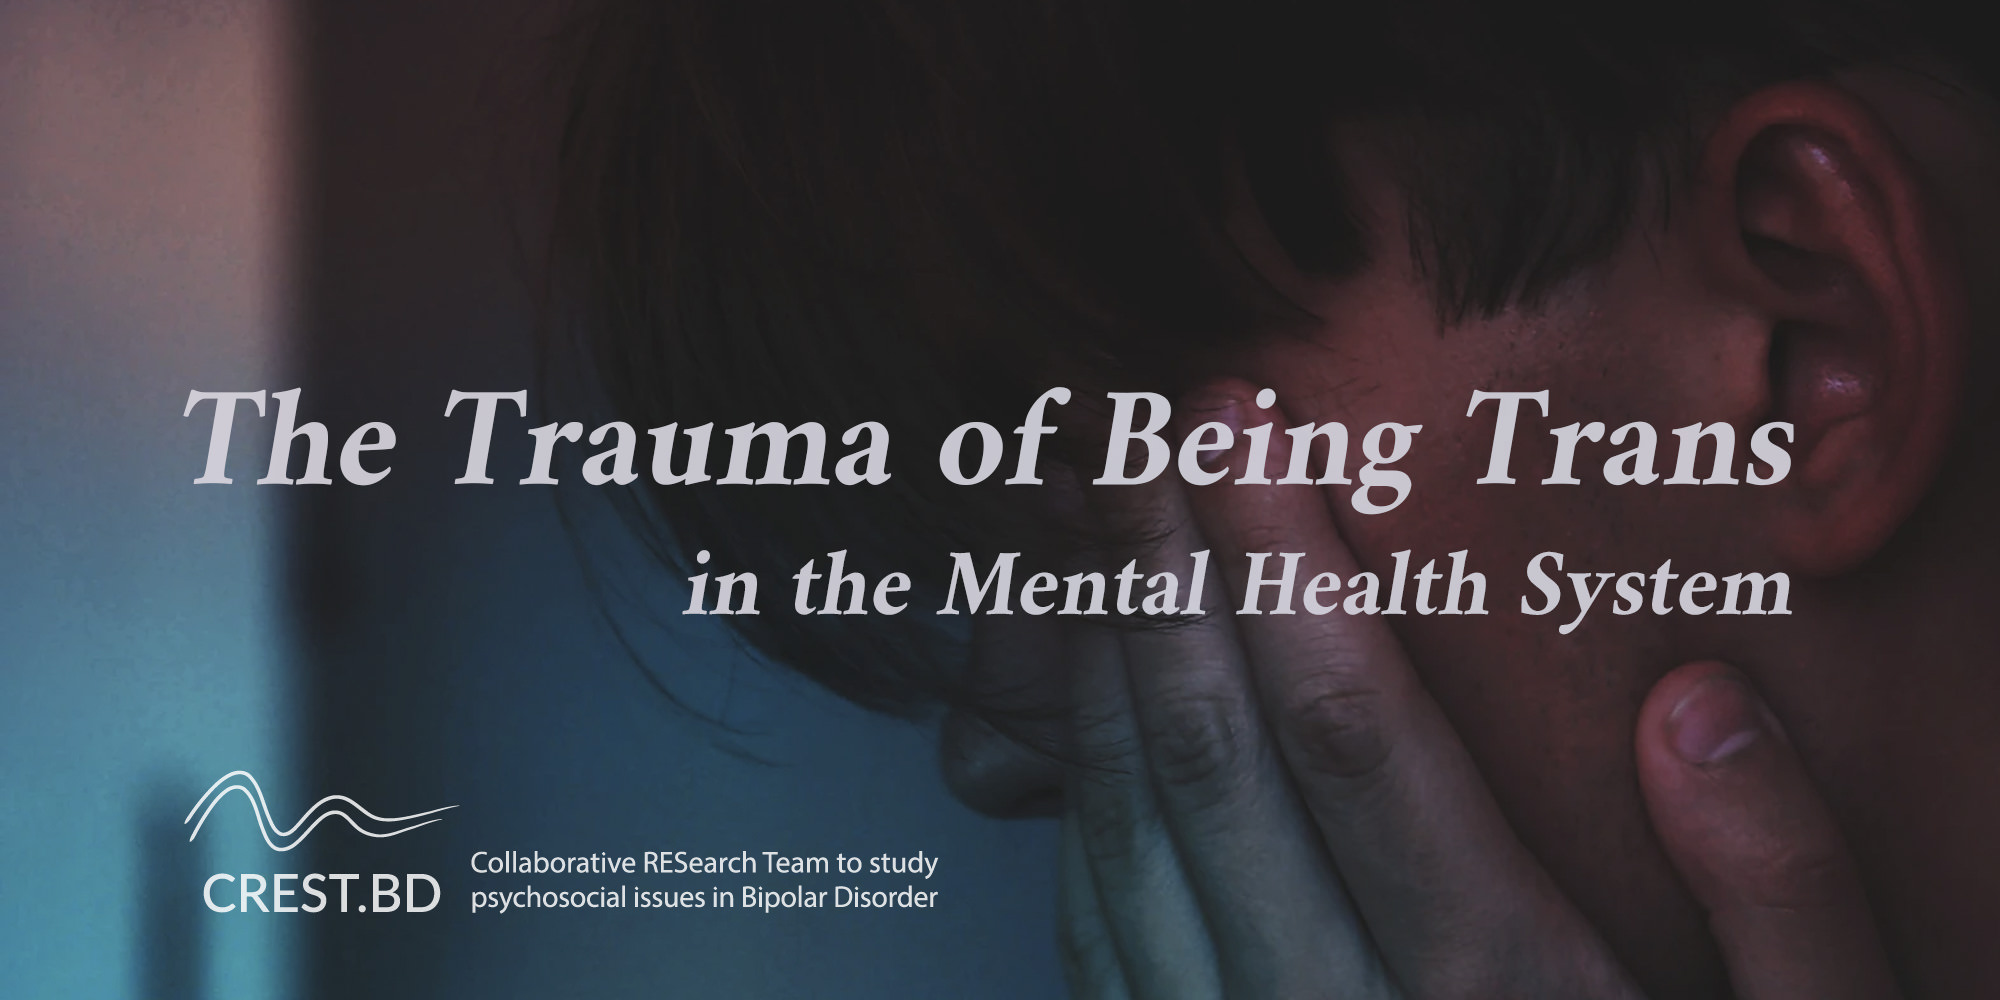 The Trauma of Being Trans in the Mental Health System